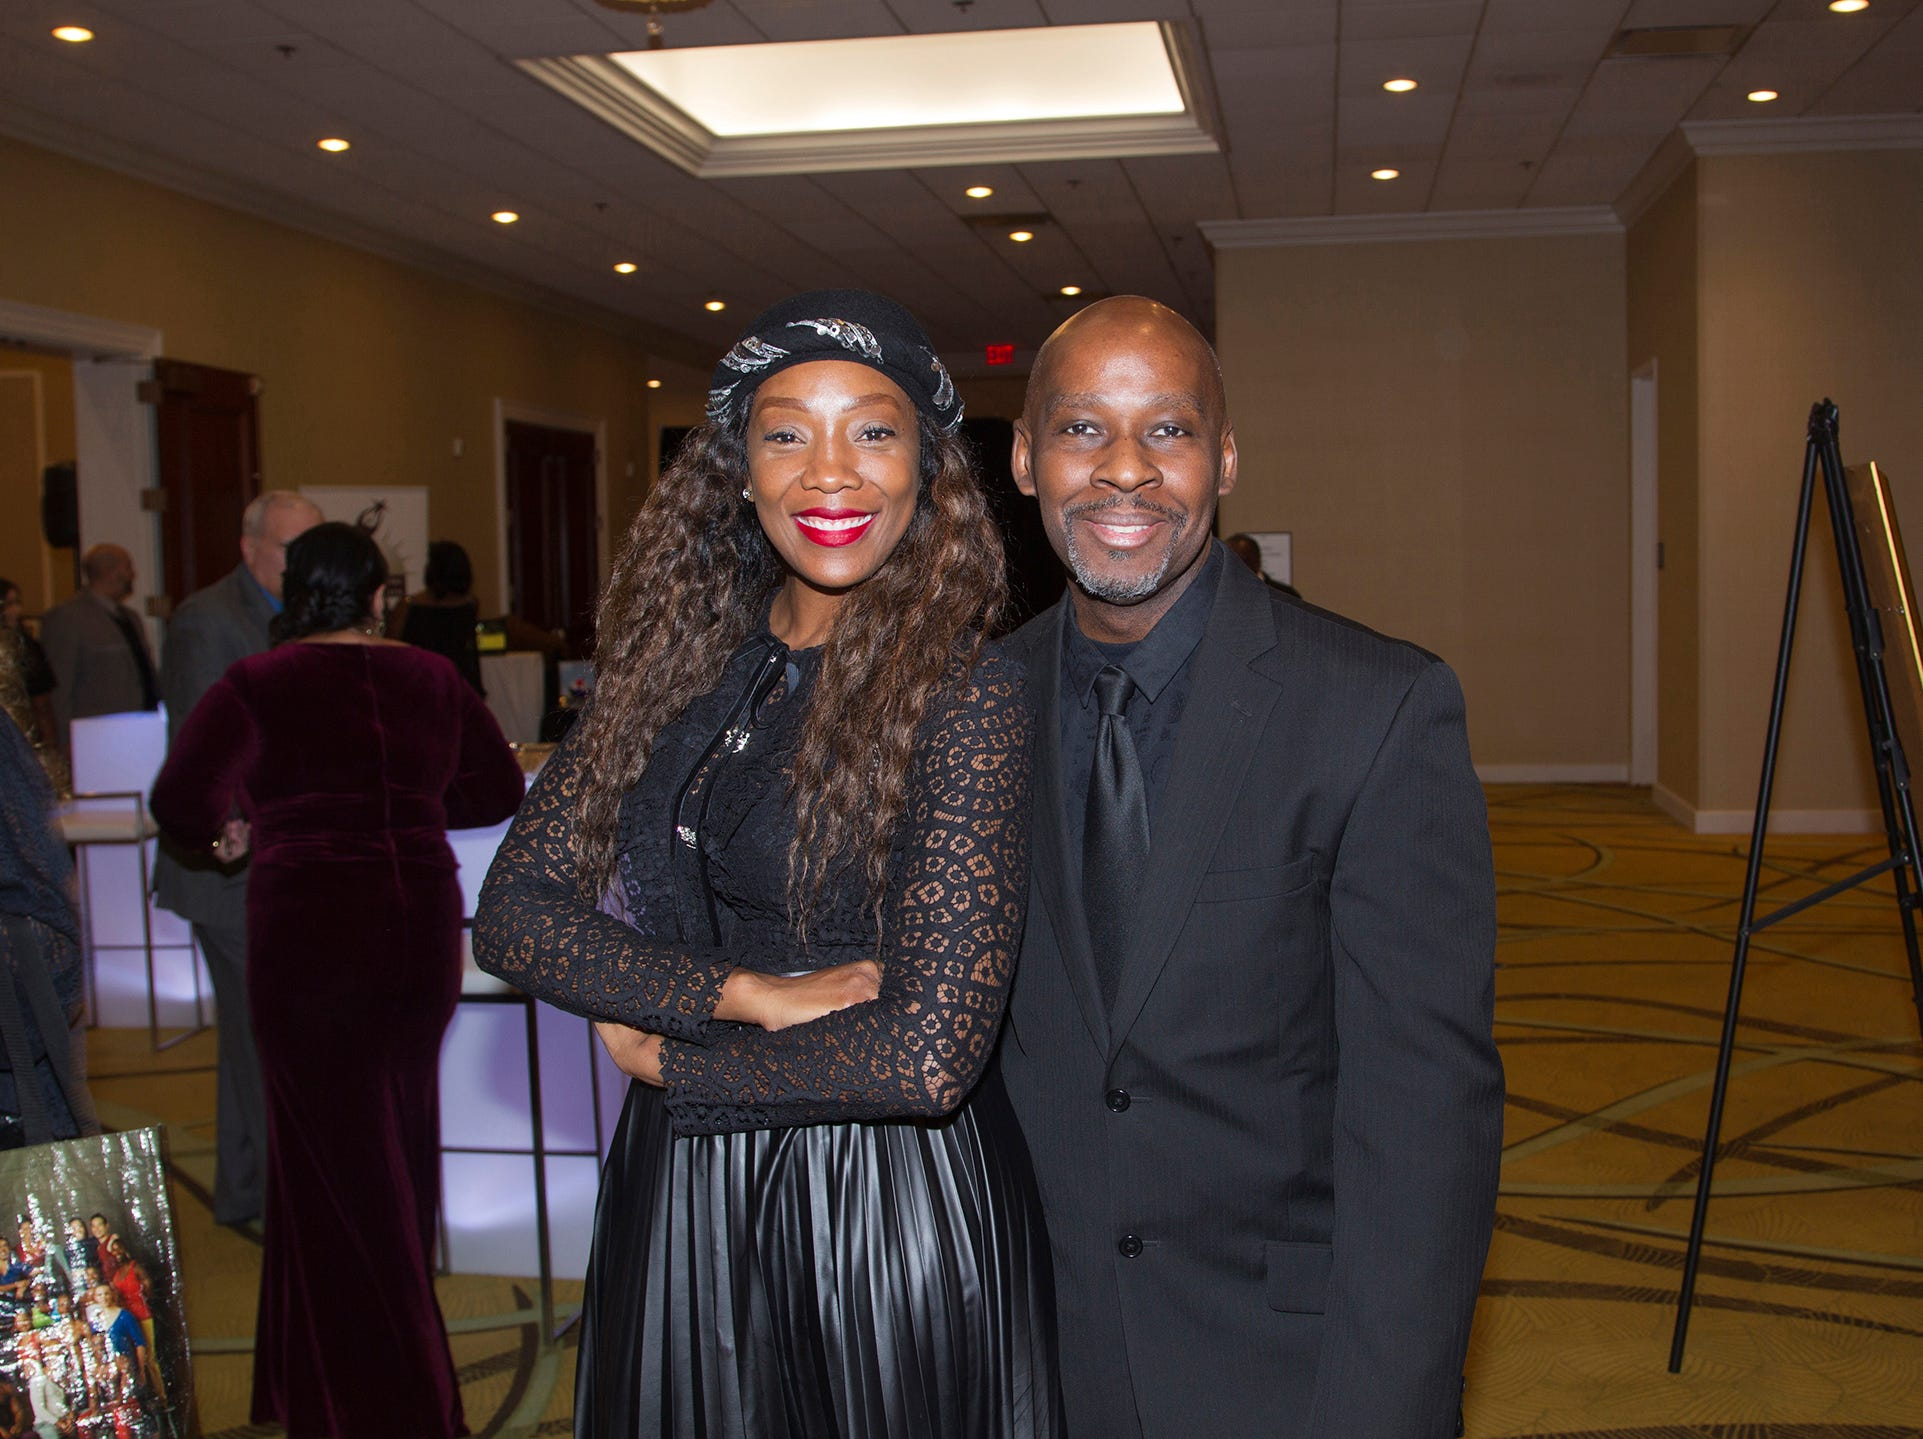 Roberta Bordeaux, Kevin Matthews.  Jessie Banks Foundation holds 16th annual Scholarship Awards Gala in Teaneck. 11/09/2018